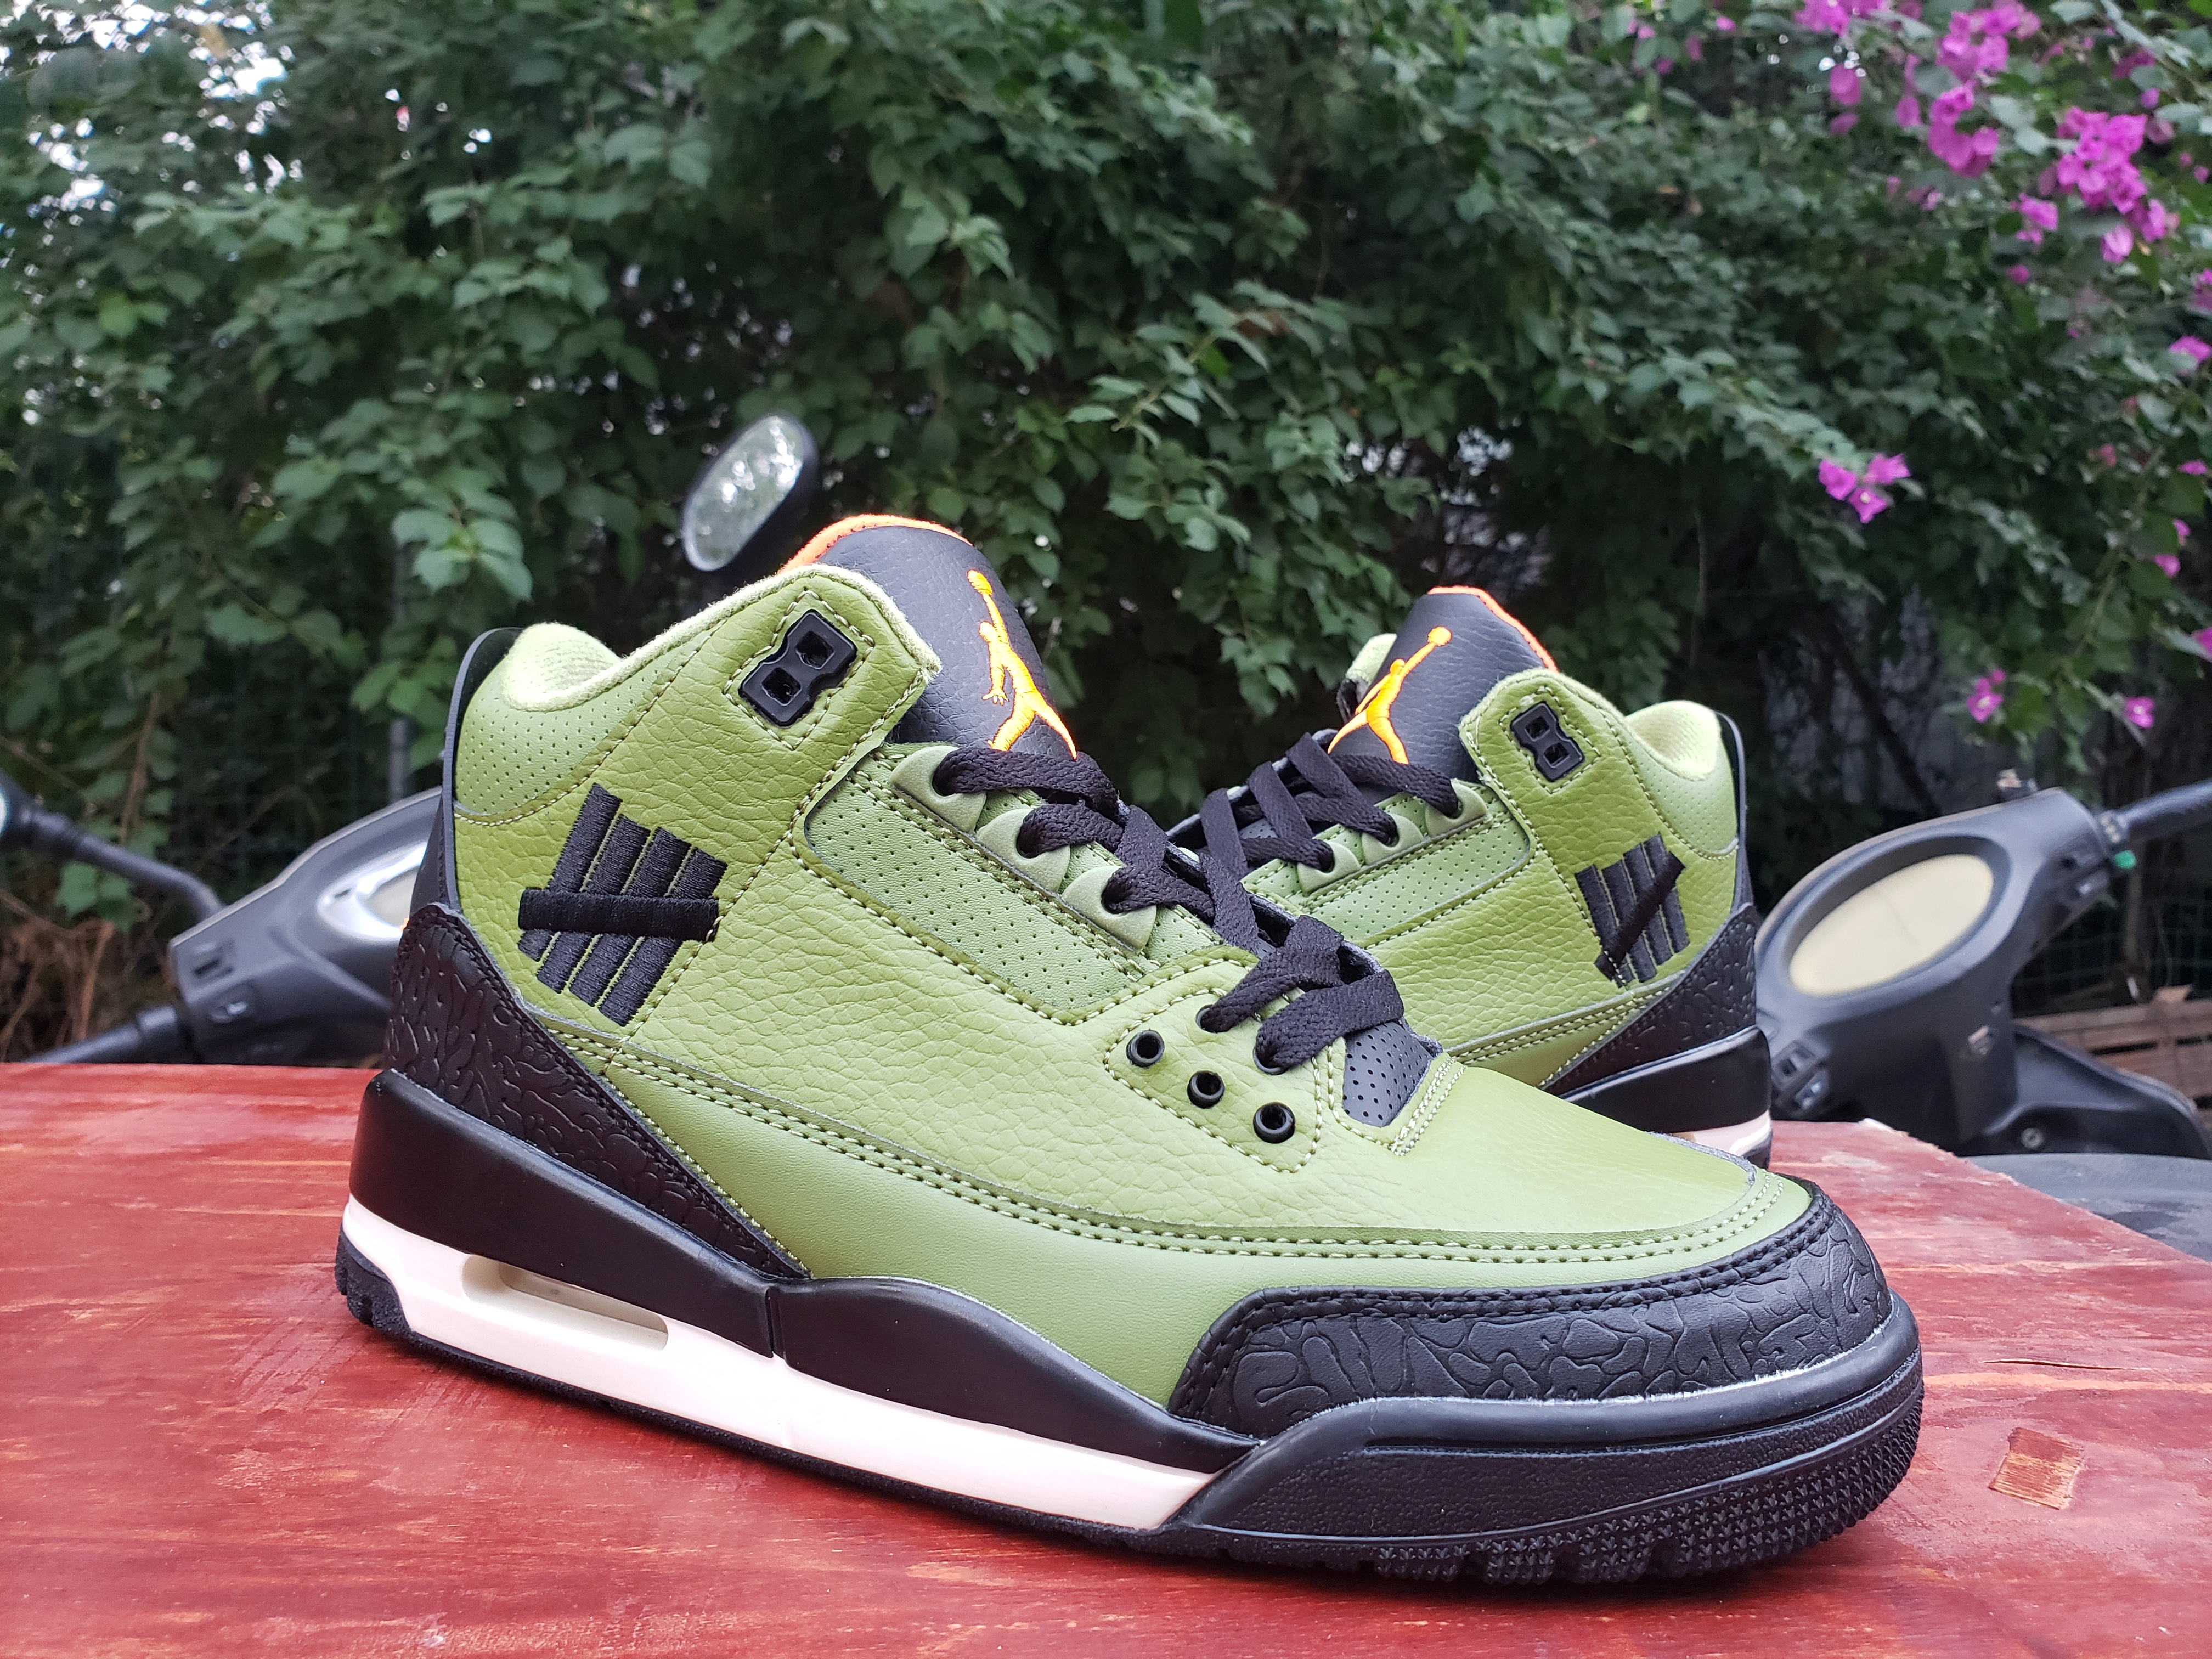 Air Jordan 3 Retro Olive Green Black Orange